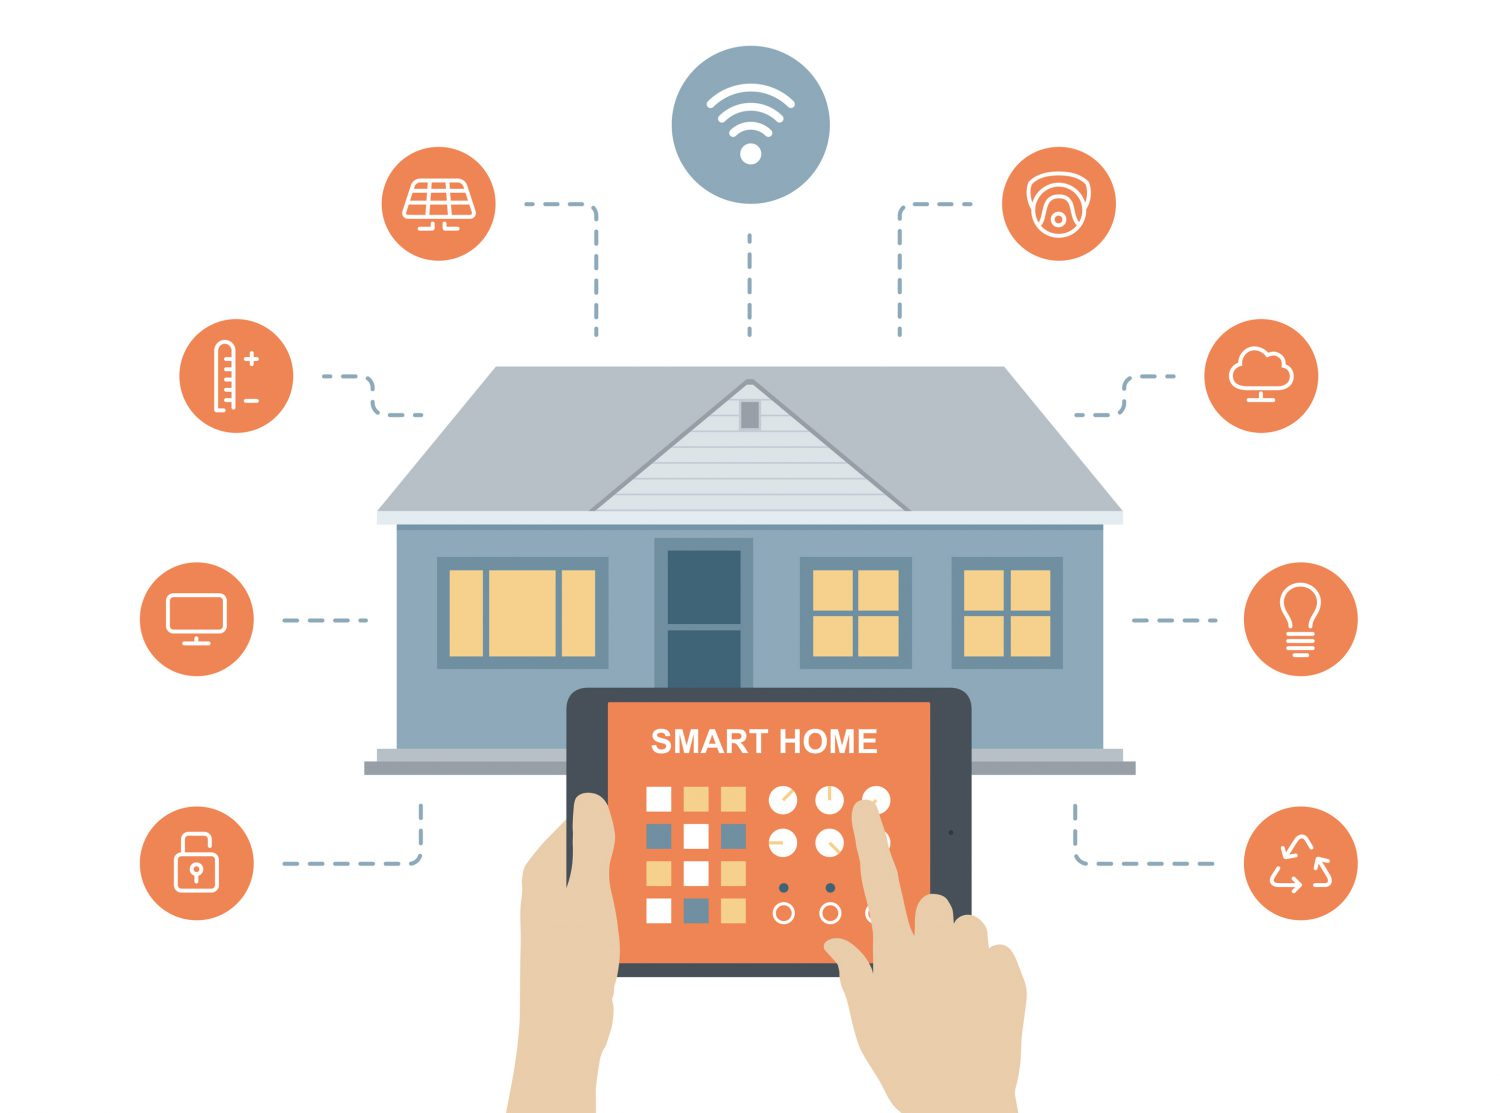 Smart home - Connected home - Casa intelligente Imc